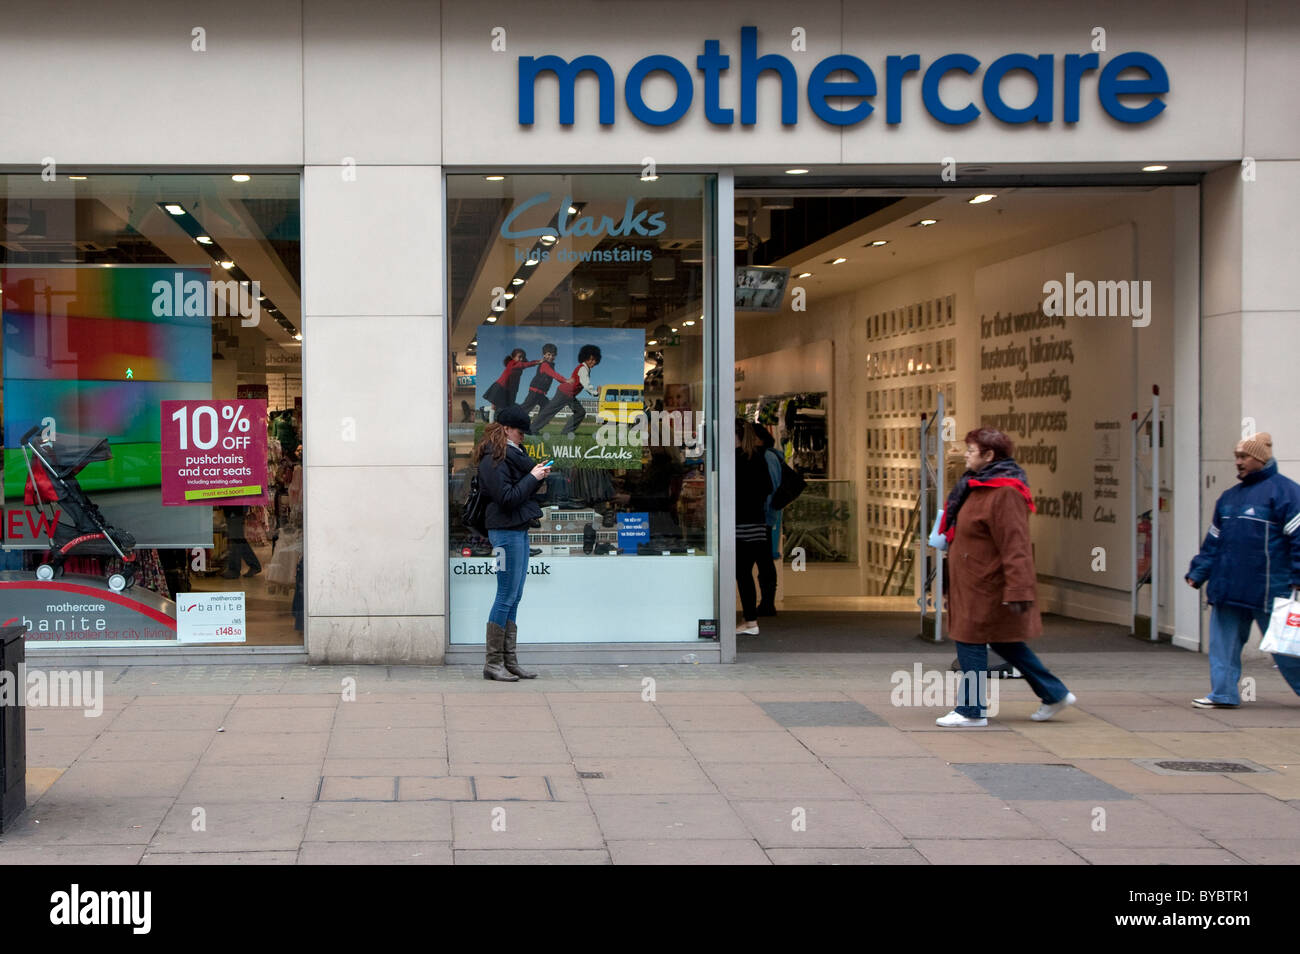 Branch of Mothercare, Oxford Street, London - Stock Image